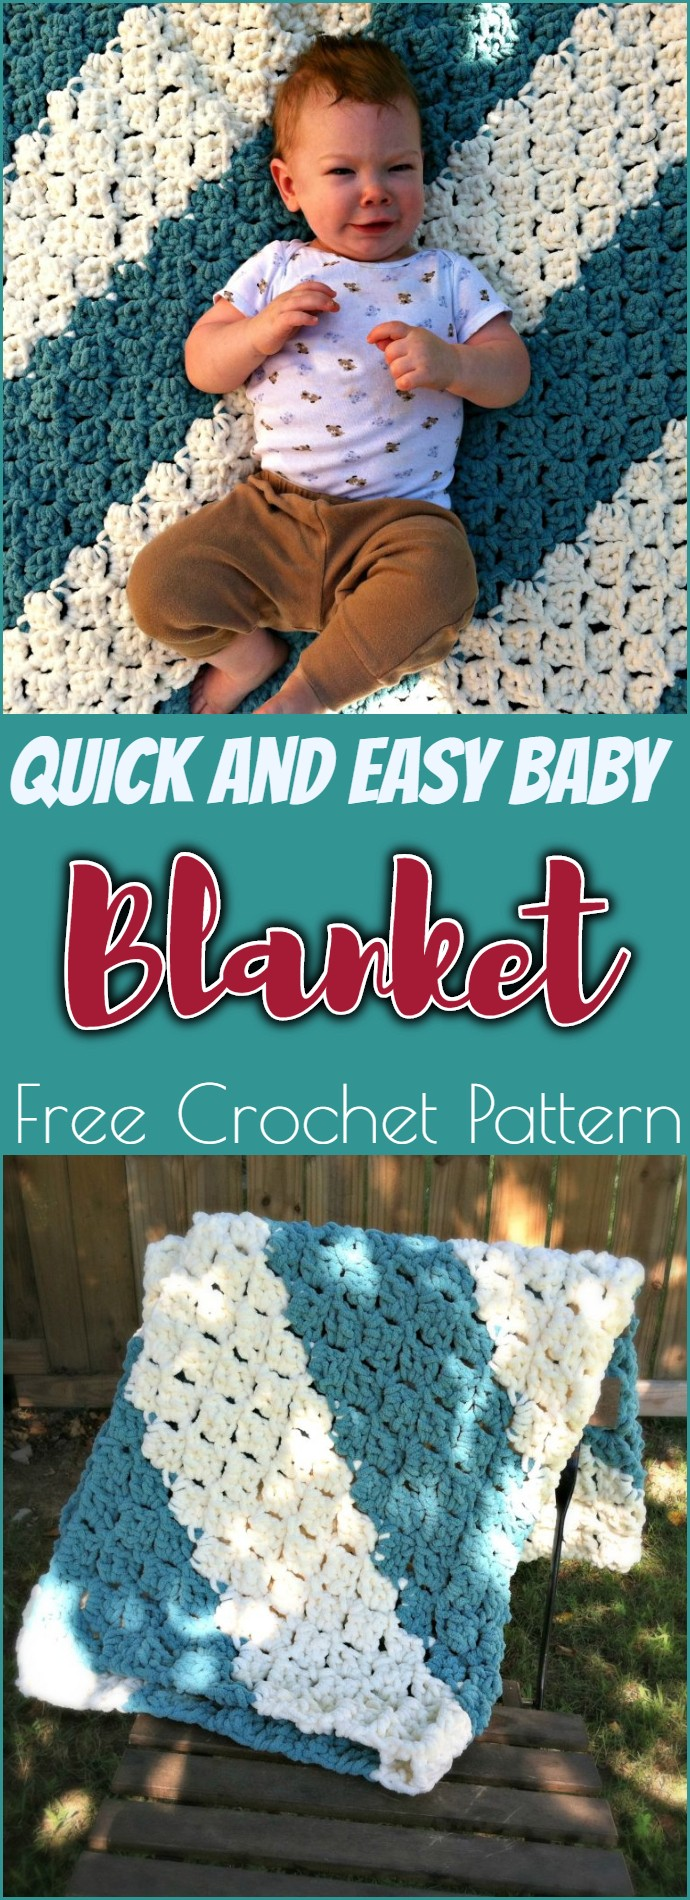 Quick And Easy Baby Blanket Free Crochet Pattern